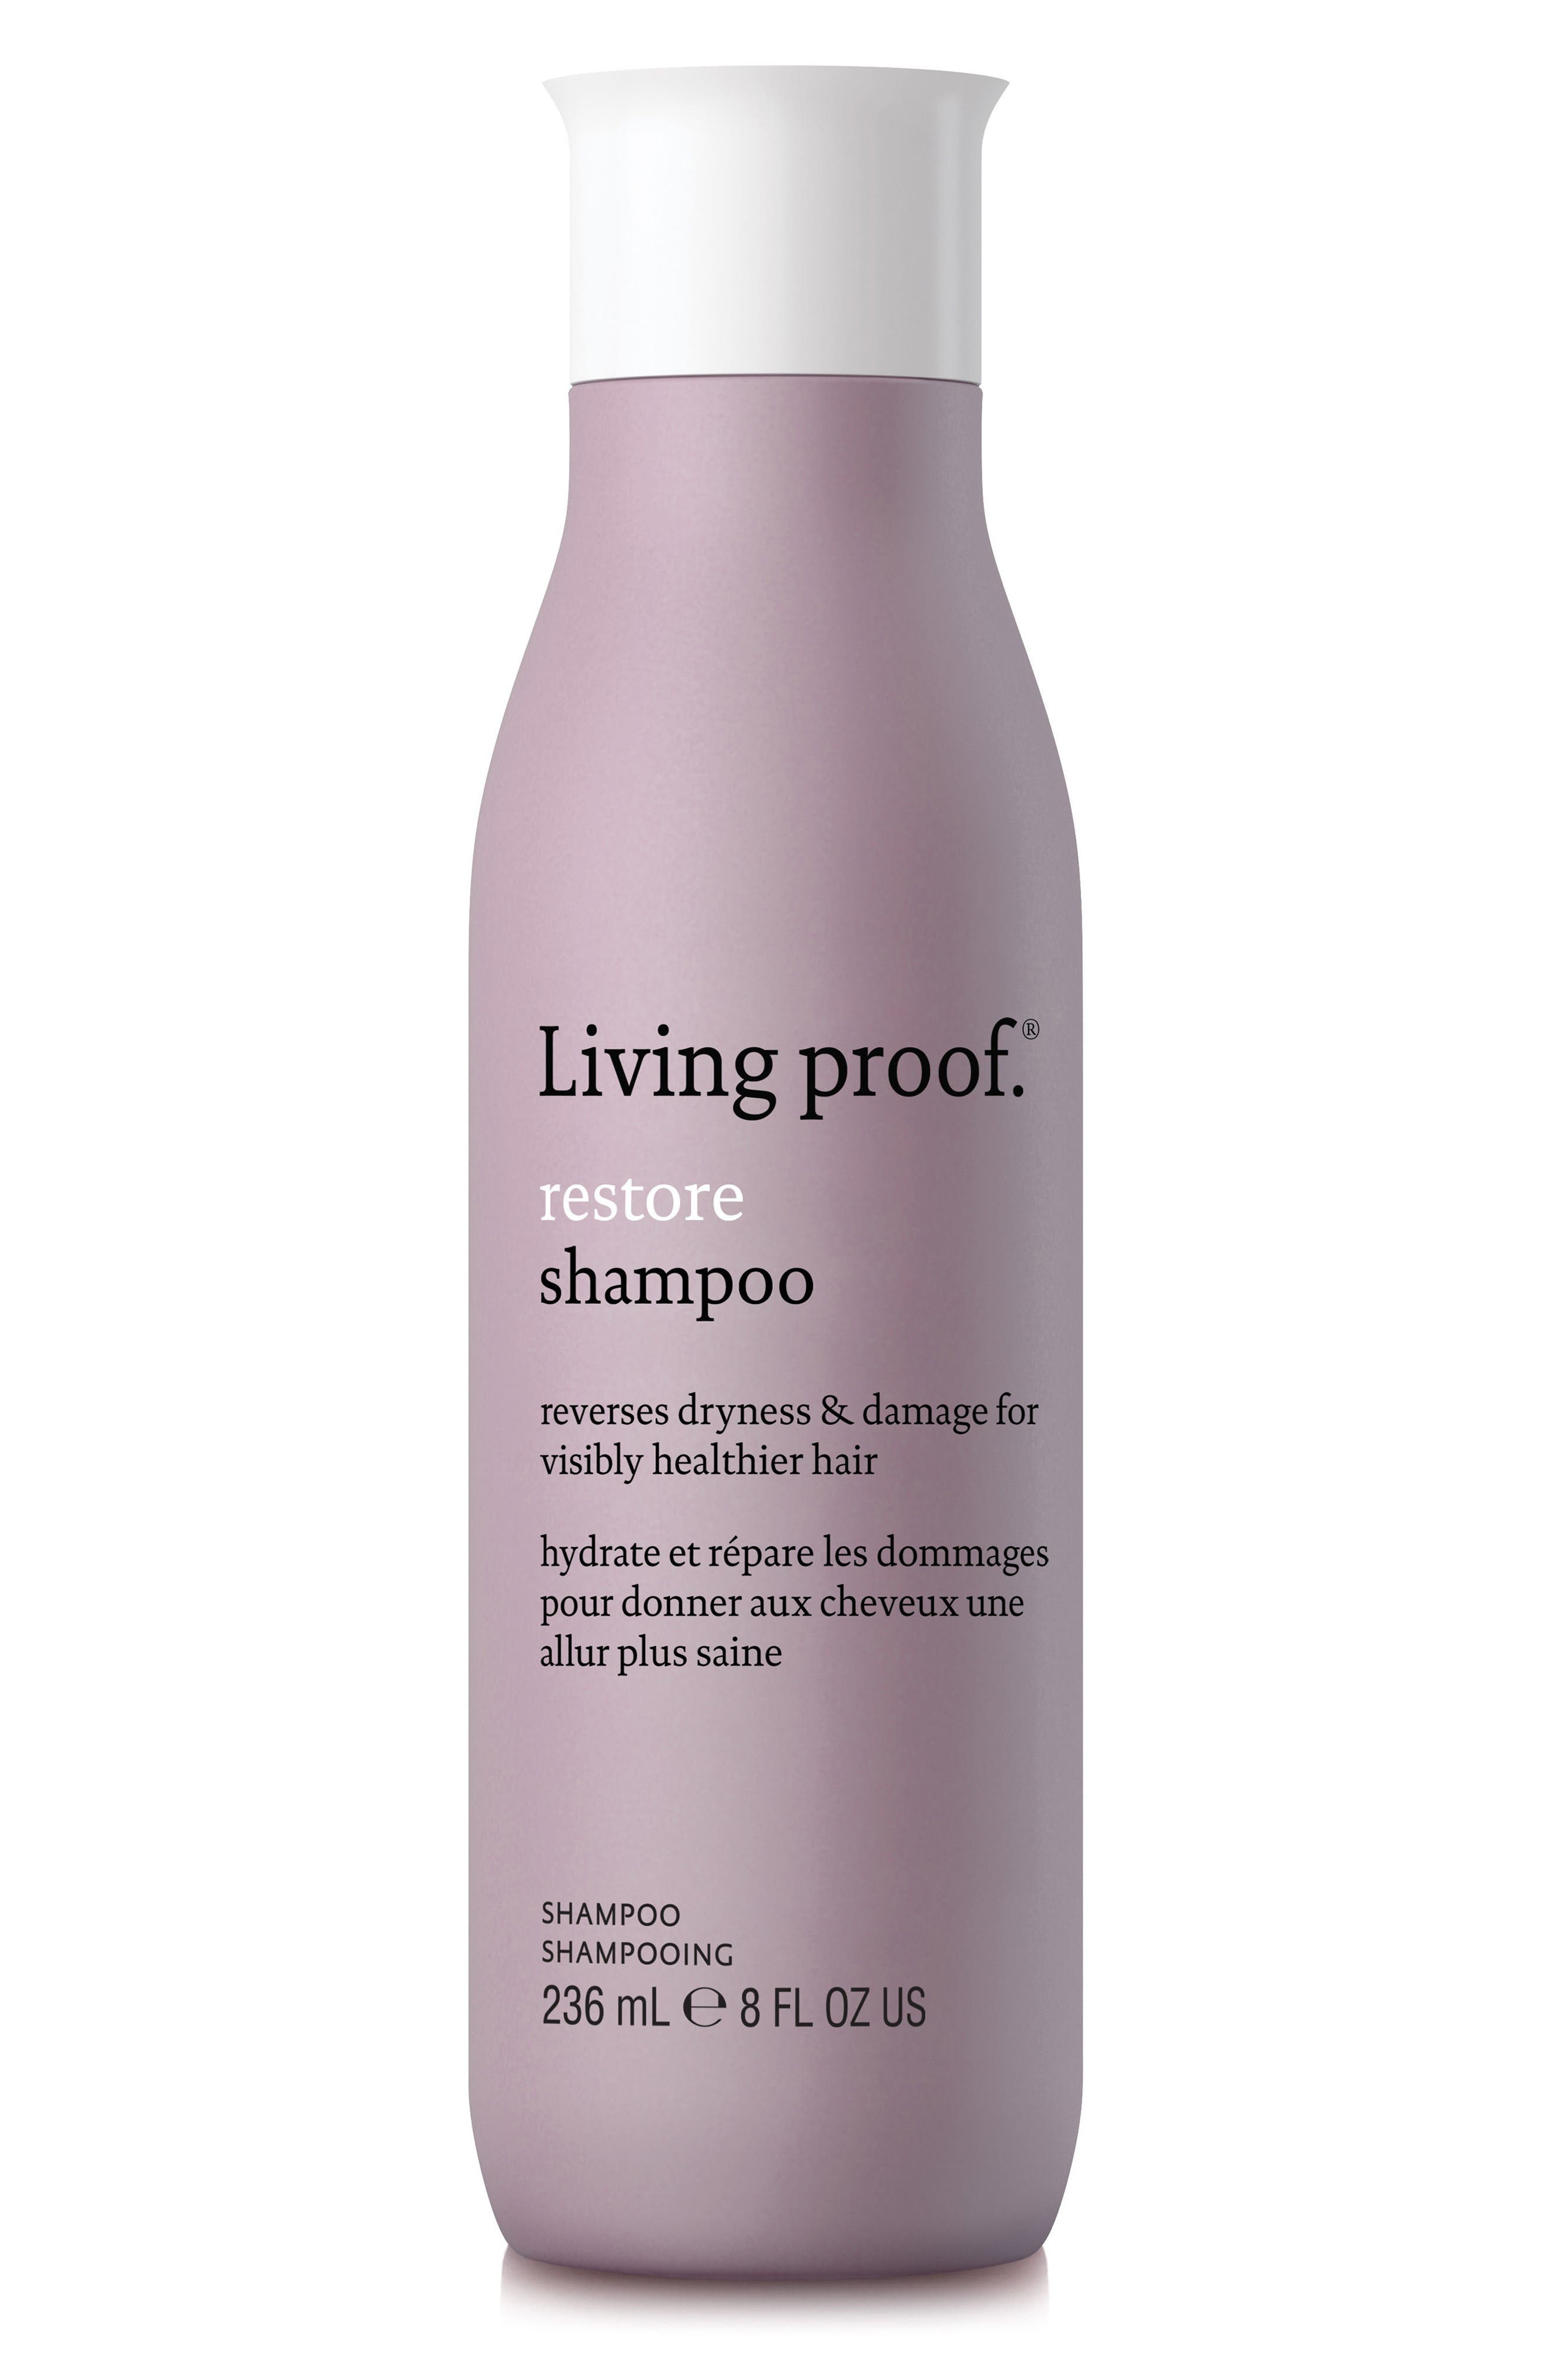 Alternate Image 1 Selected - Living proof® Restore Shampoo